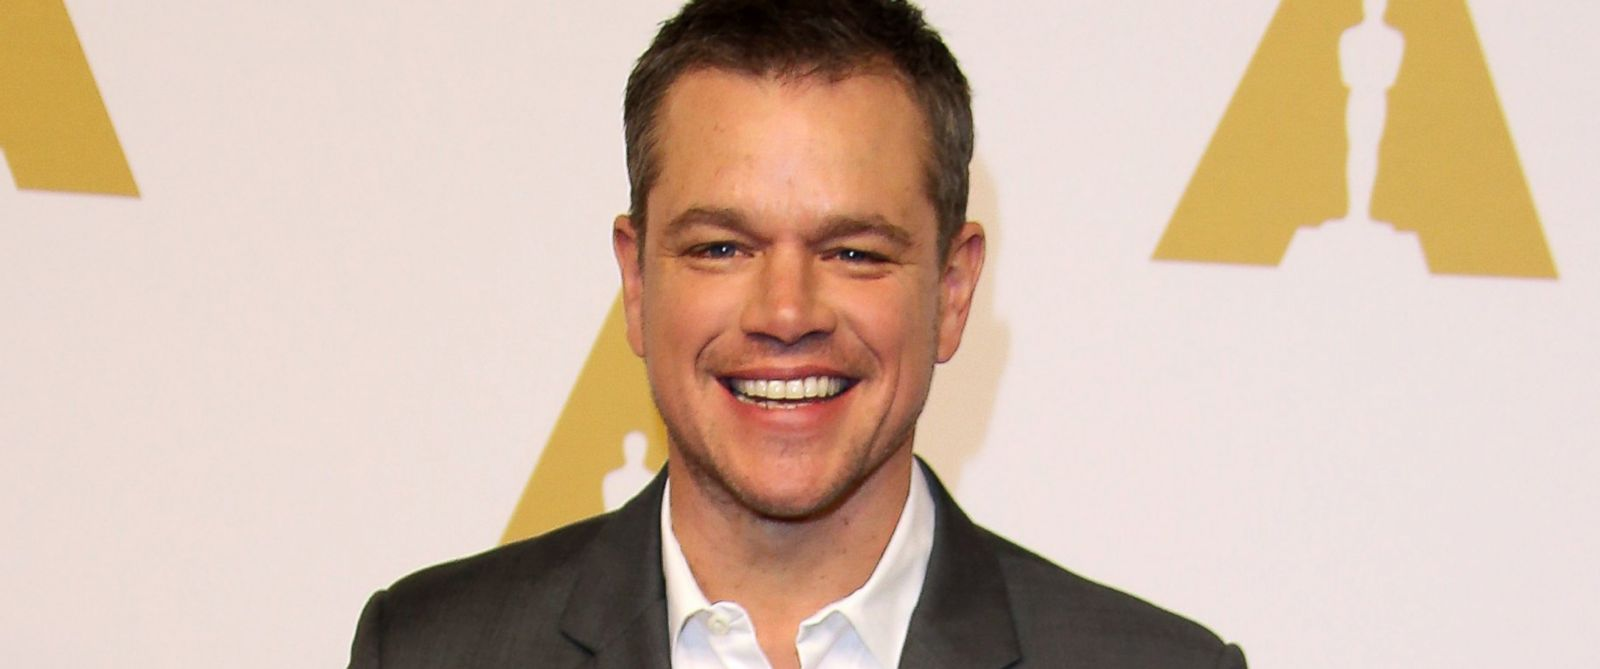 The Moment Matt Damon ...